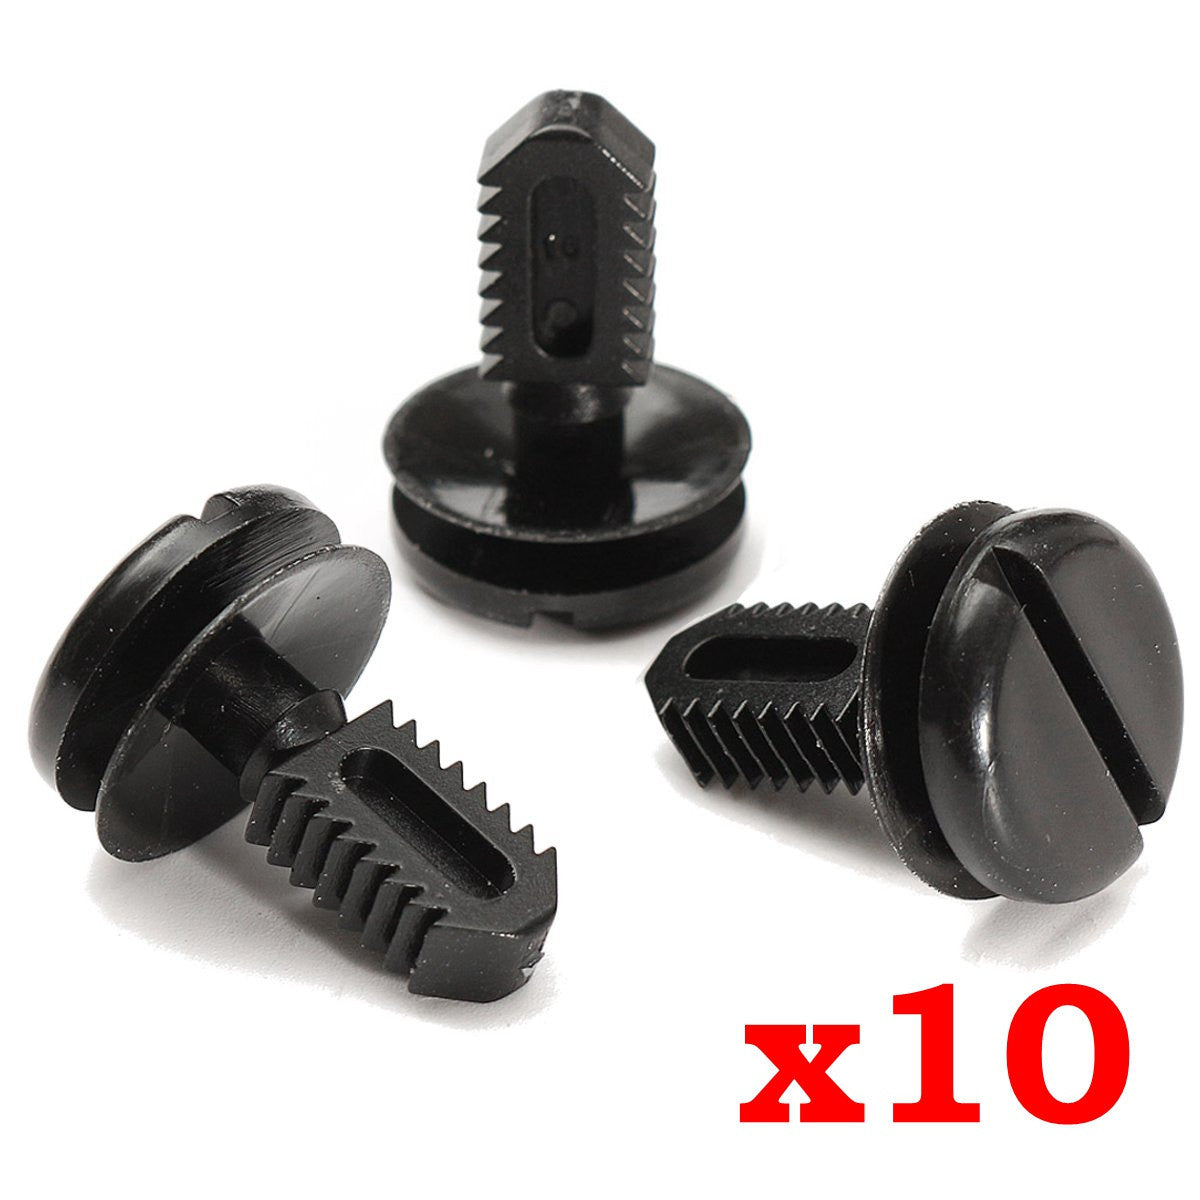 Plastic Trunk Trim Clips x10